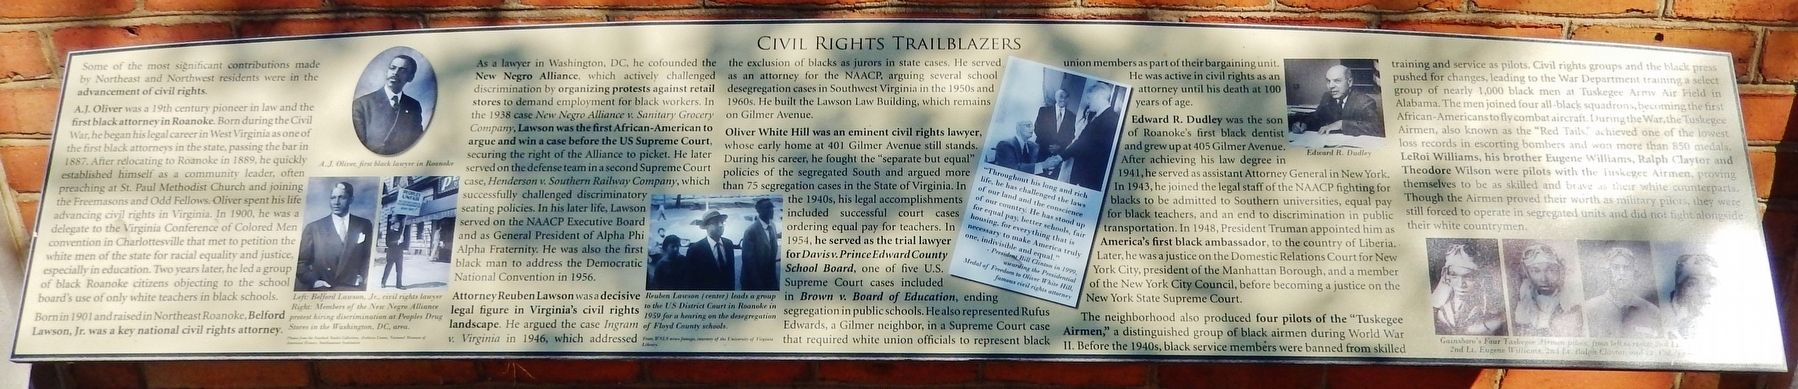 Civil Rights Trailblazers Marker image. Click for full size.